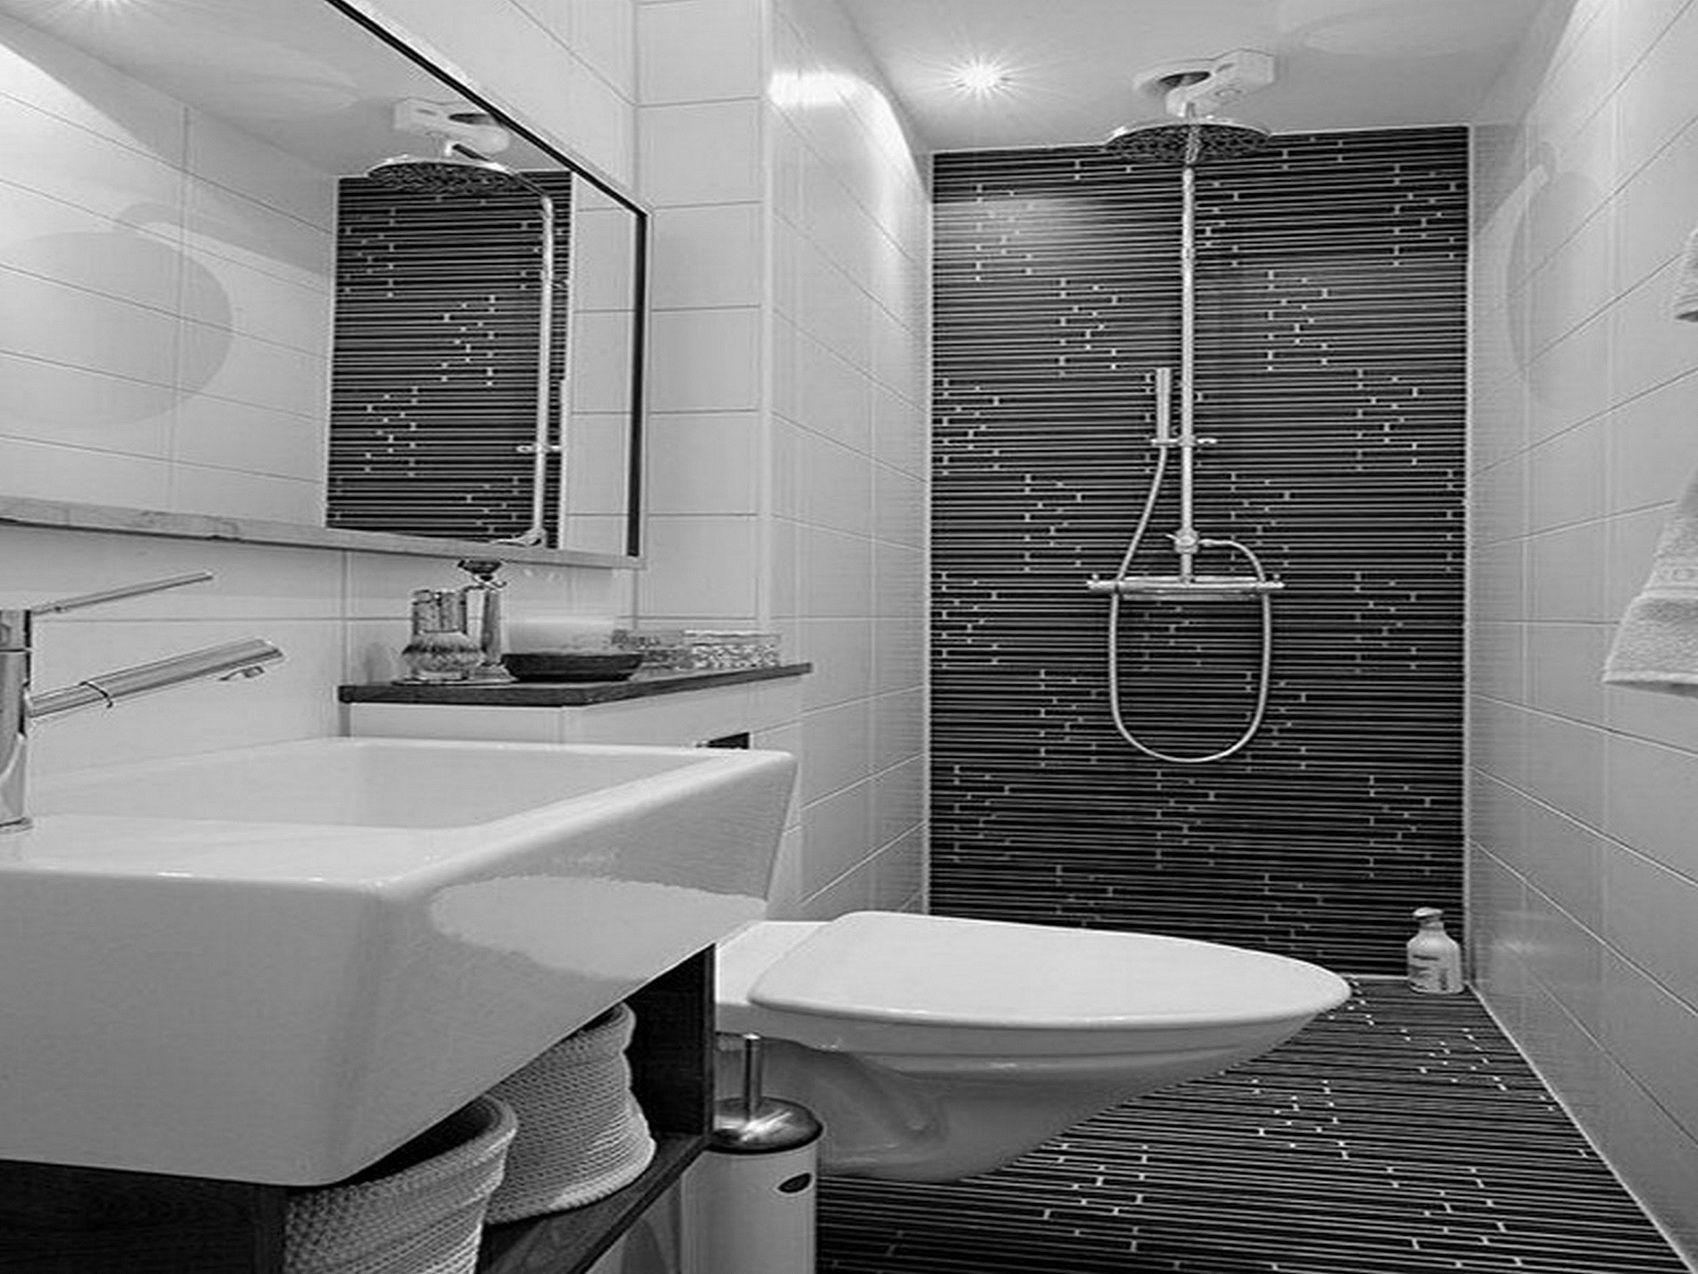 How to decorate a small bathroom in black and white - Black Tiles In Bathroom Ideas Nola Designs